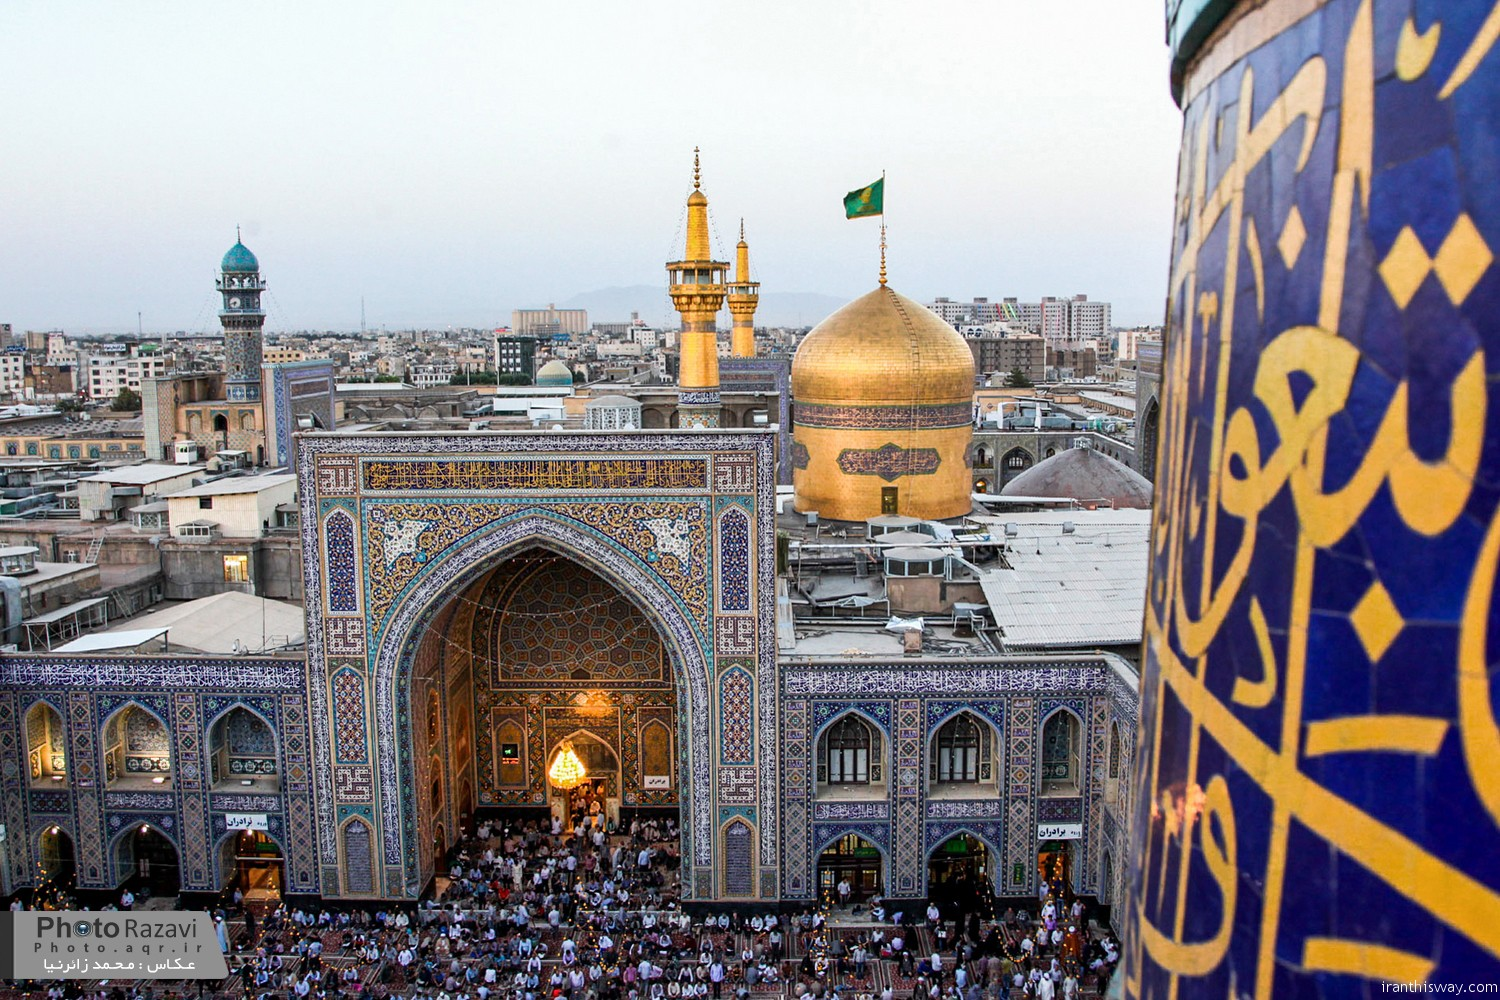 Holy shrine of Imam Reza (AS)